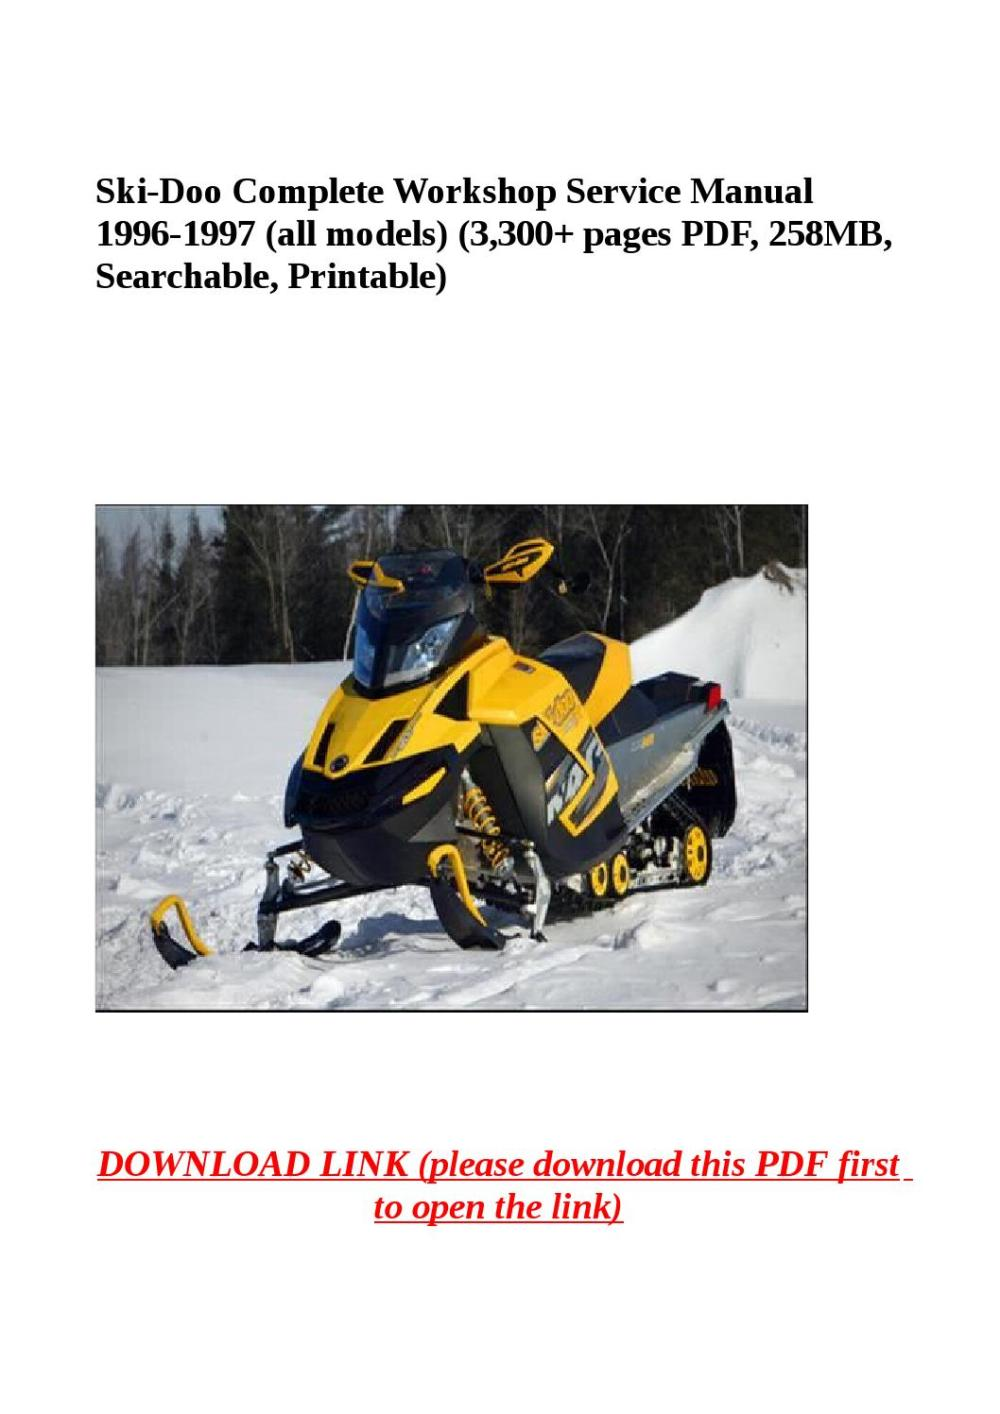 medium resolution of ski doo complete workshop service manual 1996 1997 all models rh issuu com 1997 ski